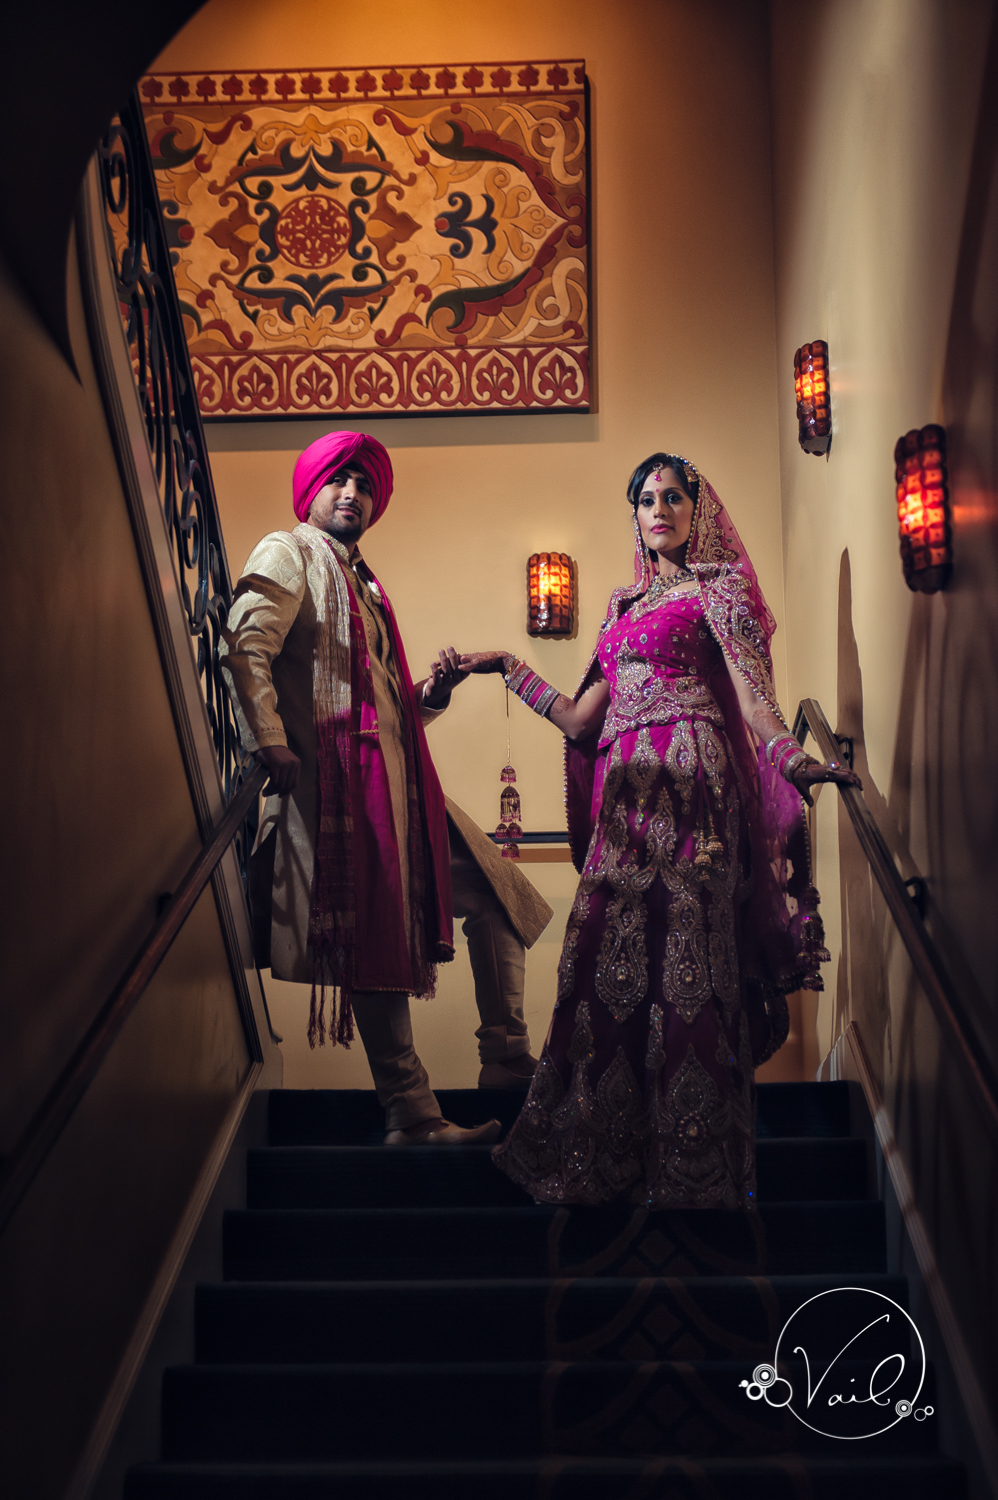 East indian wedding Within SODO Seattle-15.jpg